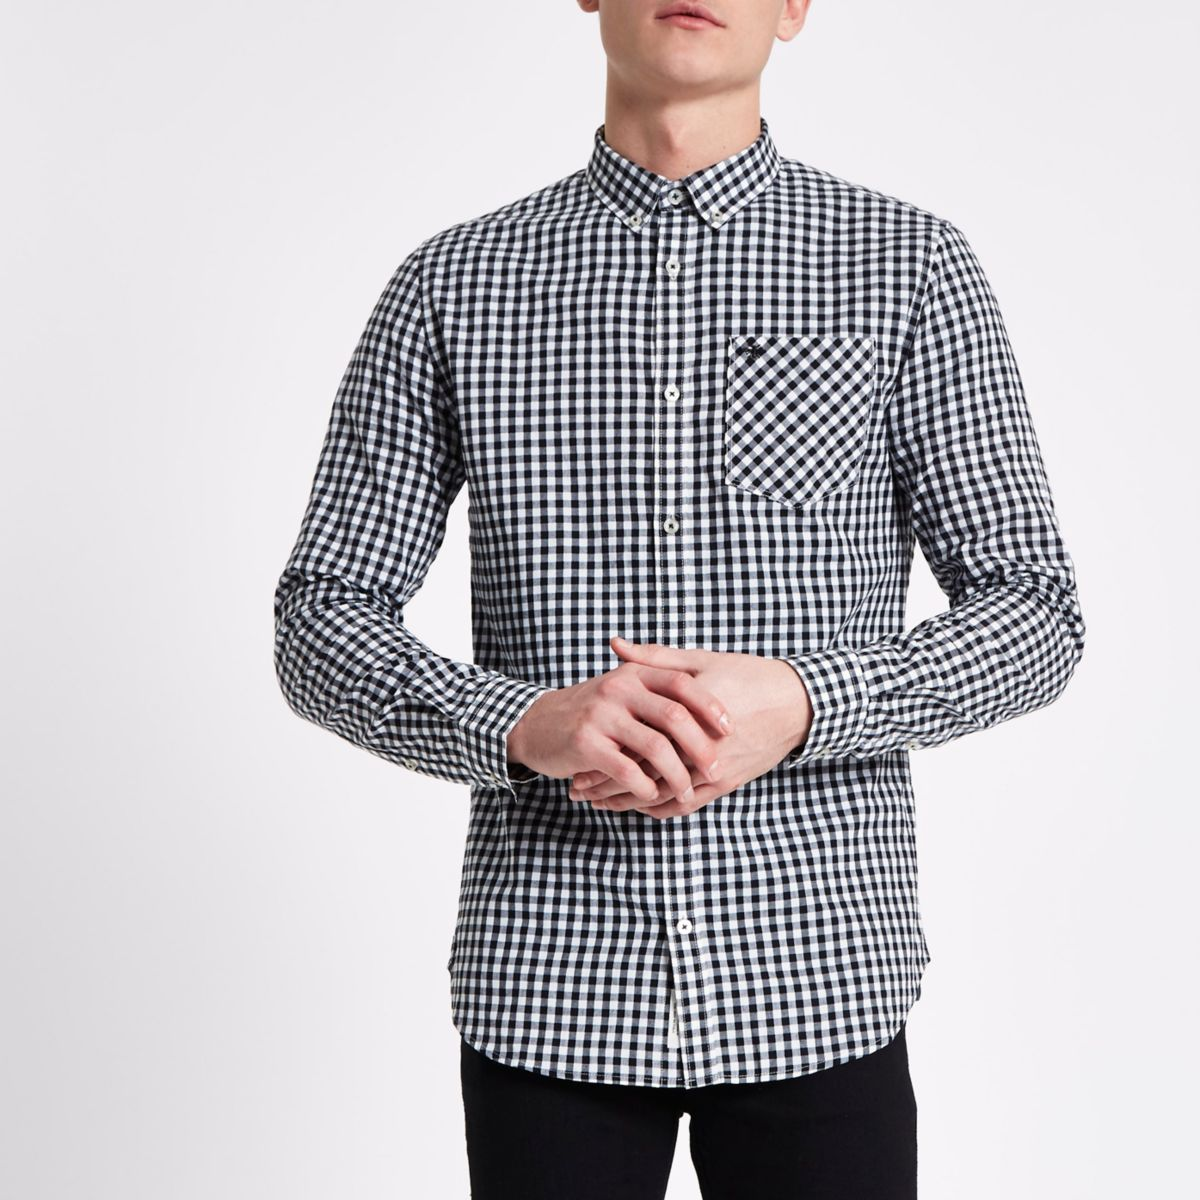 Black gingham button-down shirt